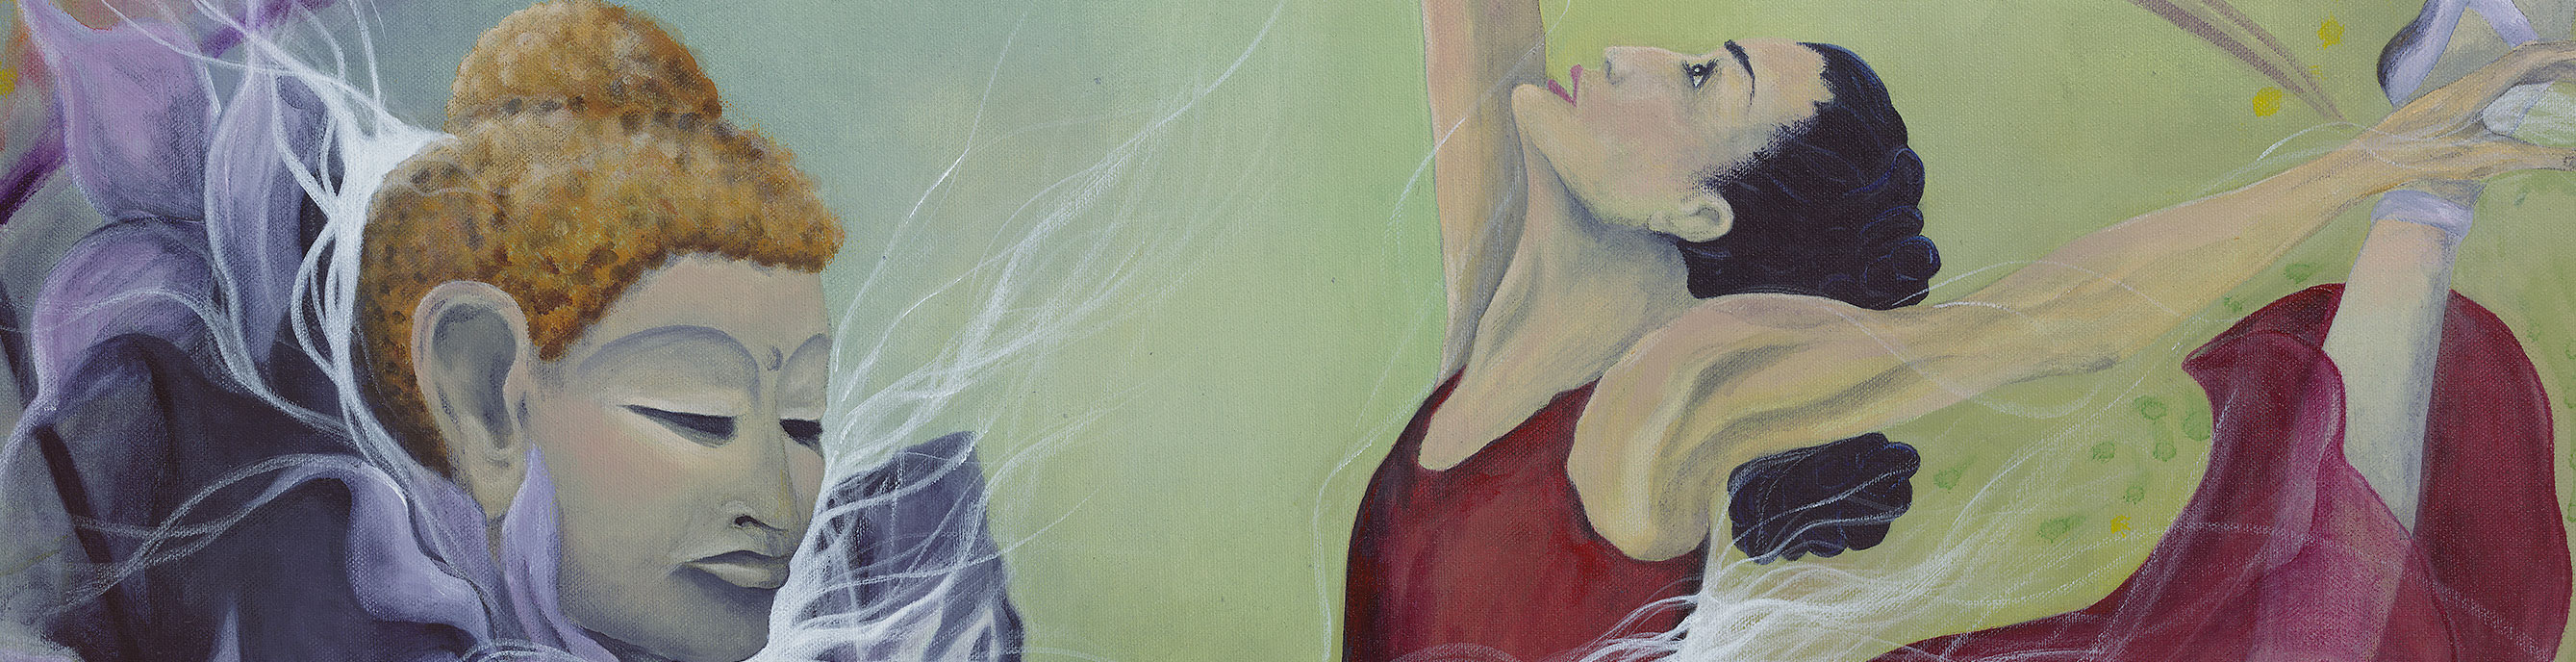 TWO_Painting-banner